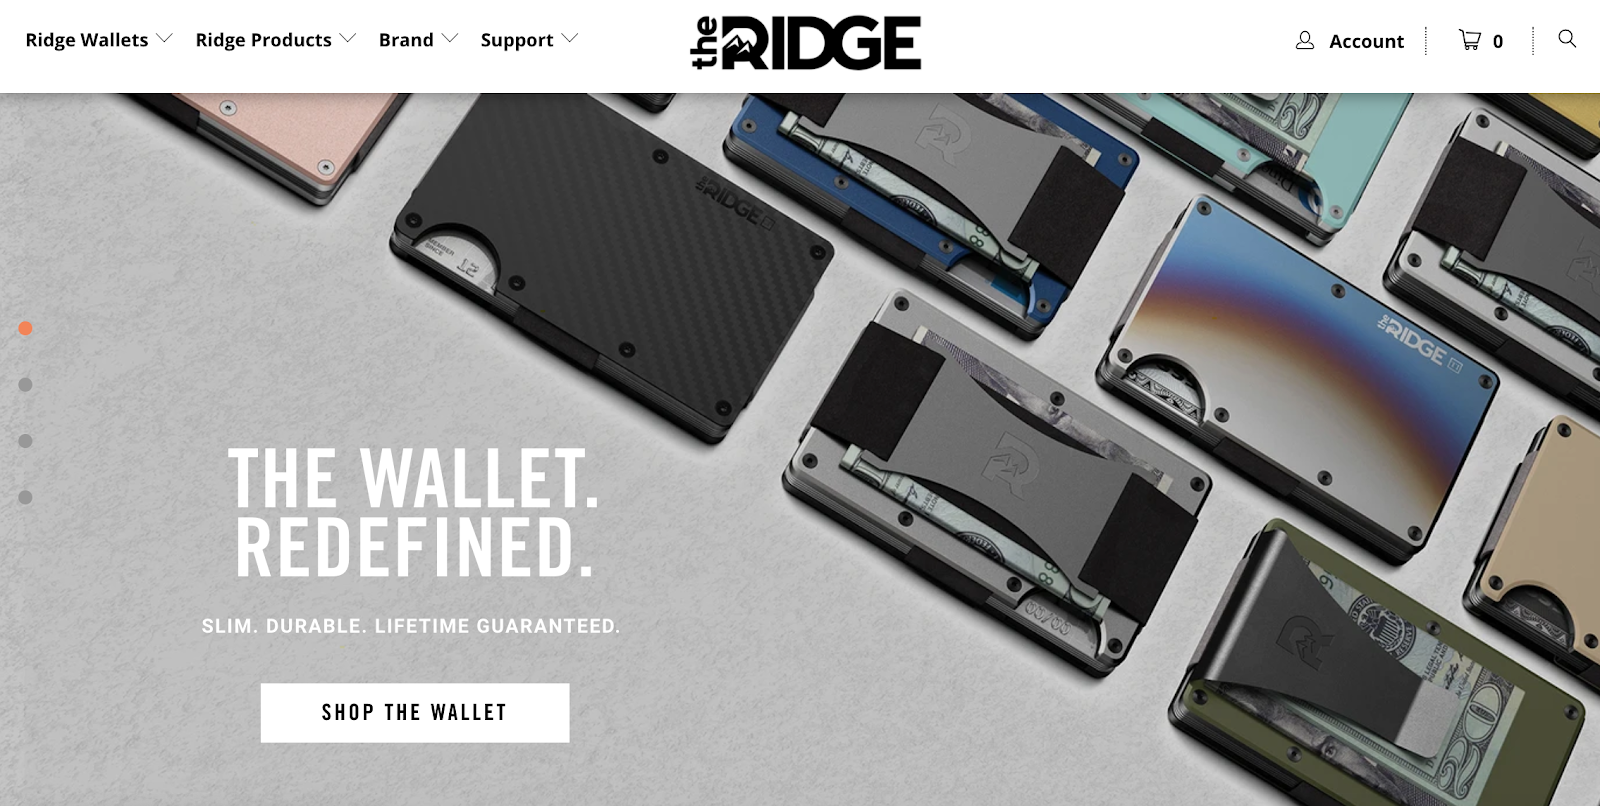 The Ridge homepage with Ridge Wallets in the background